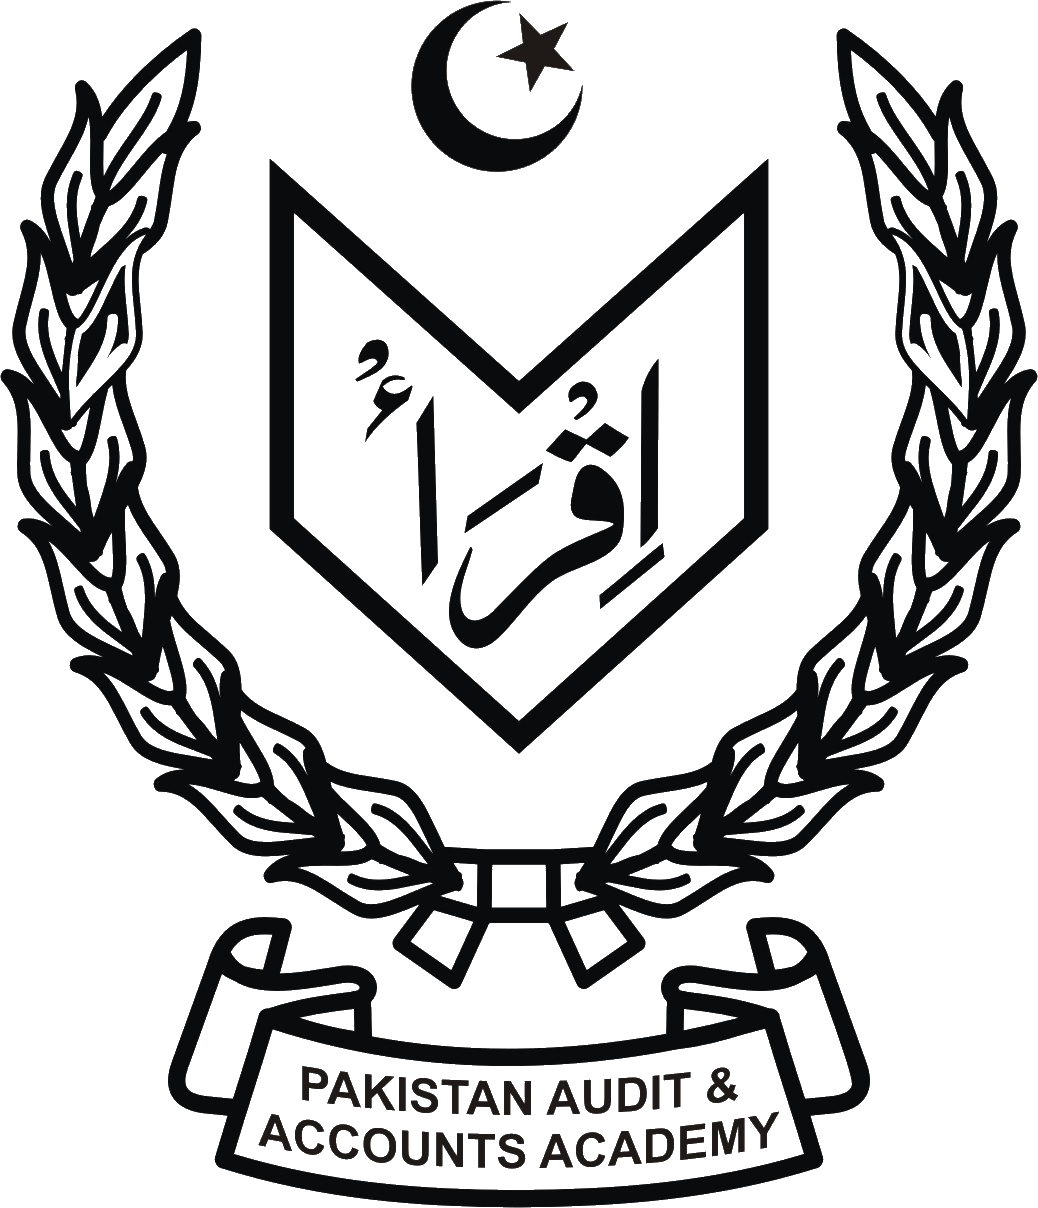 Pakistan Audit & Accounts Academy